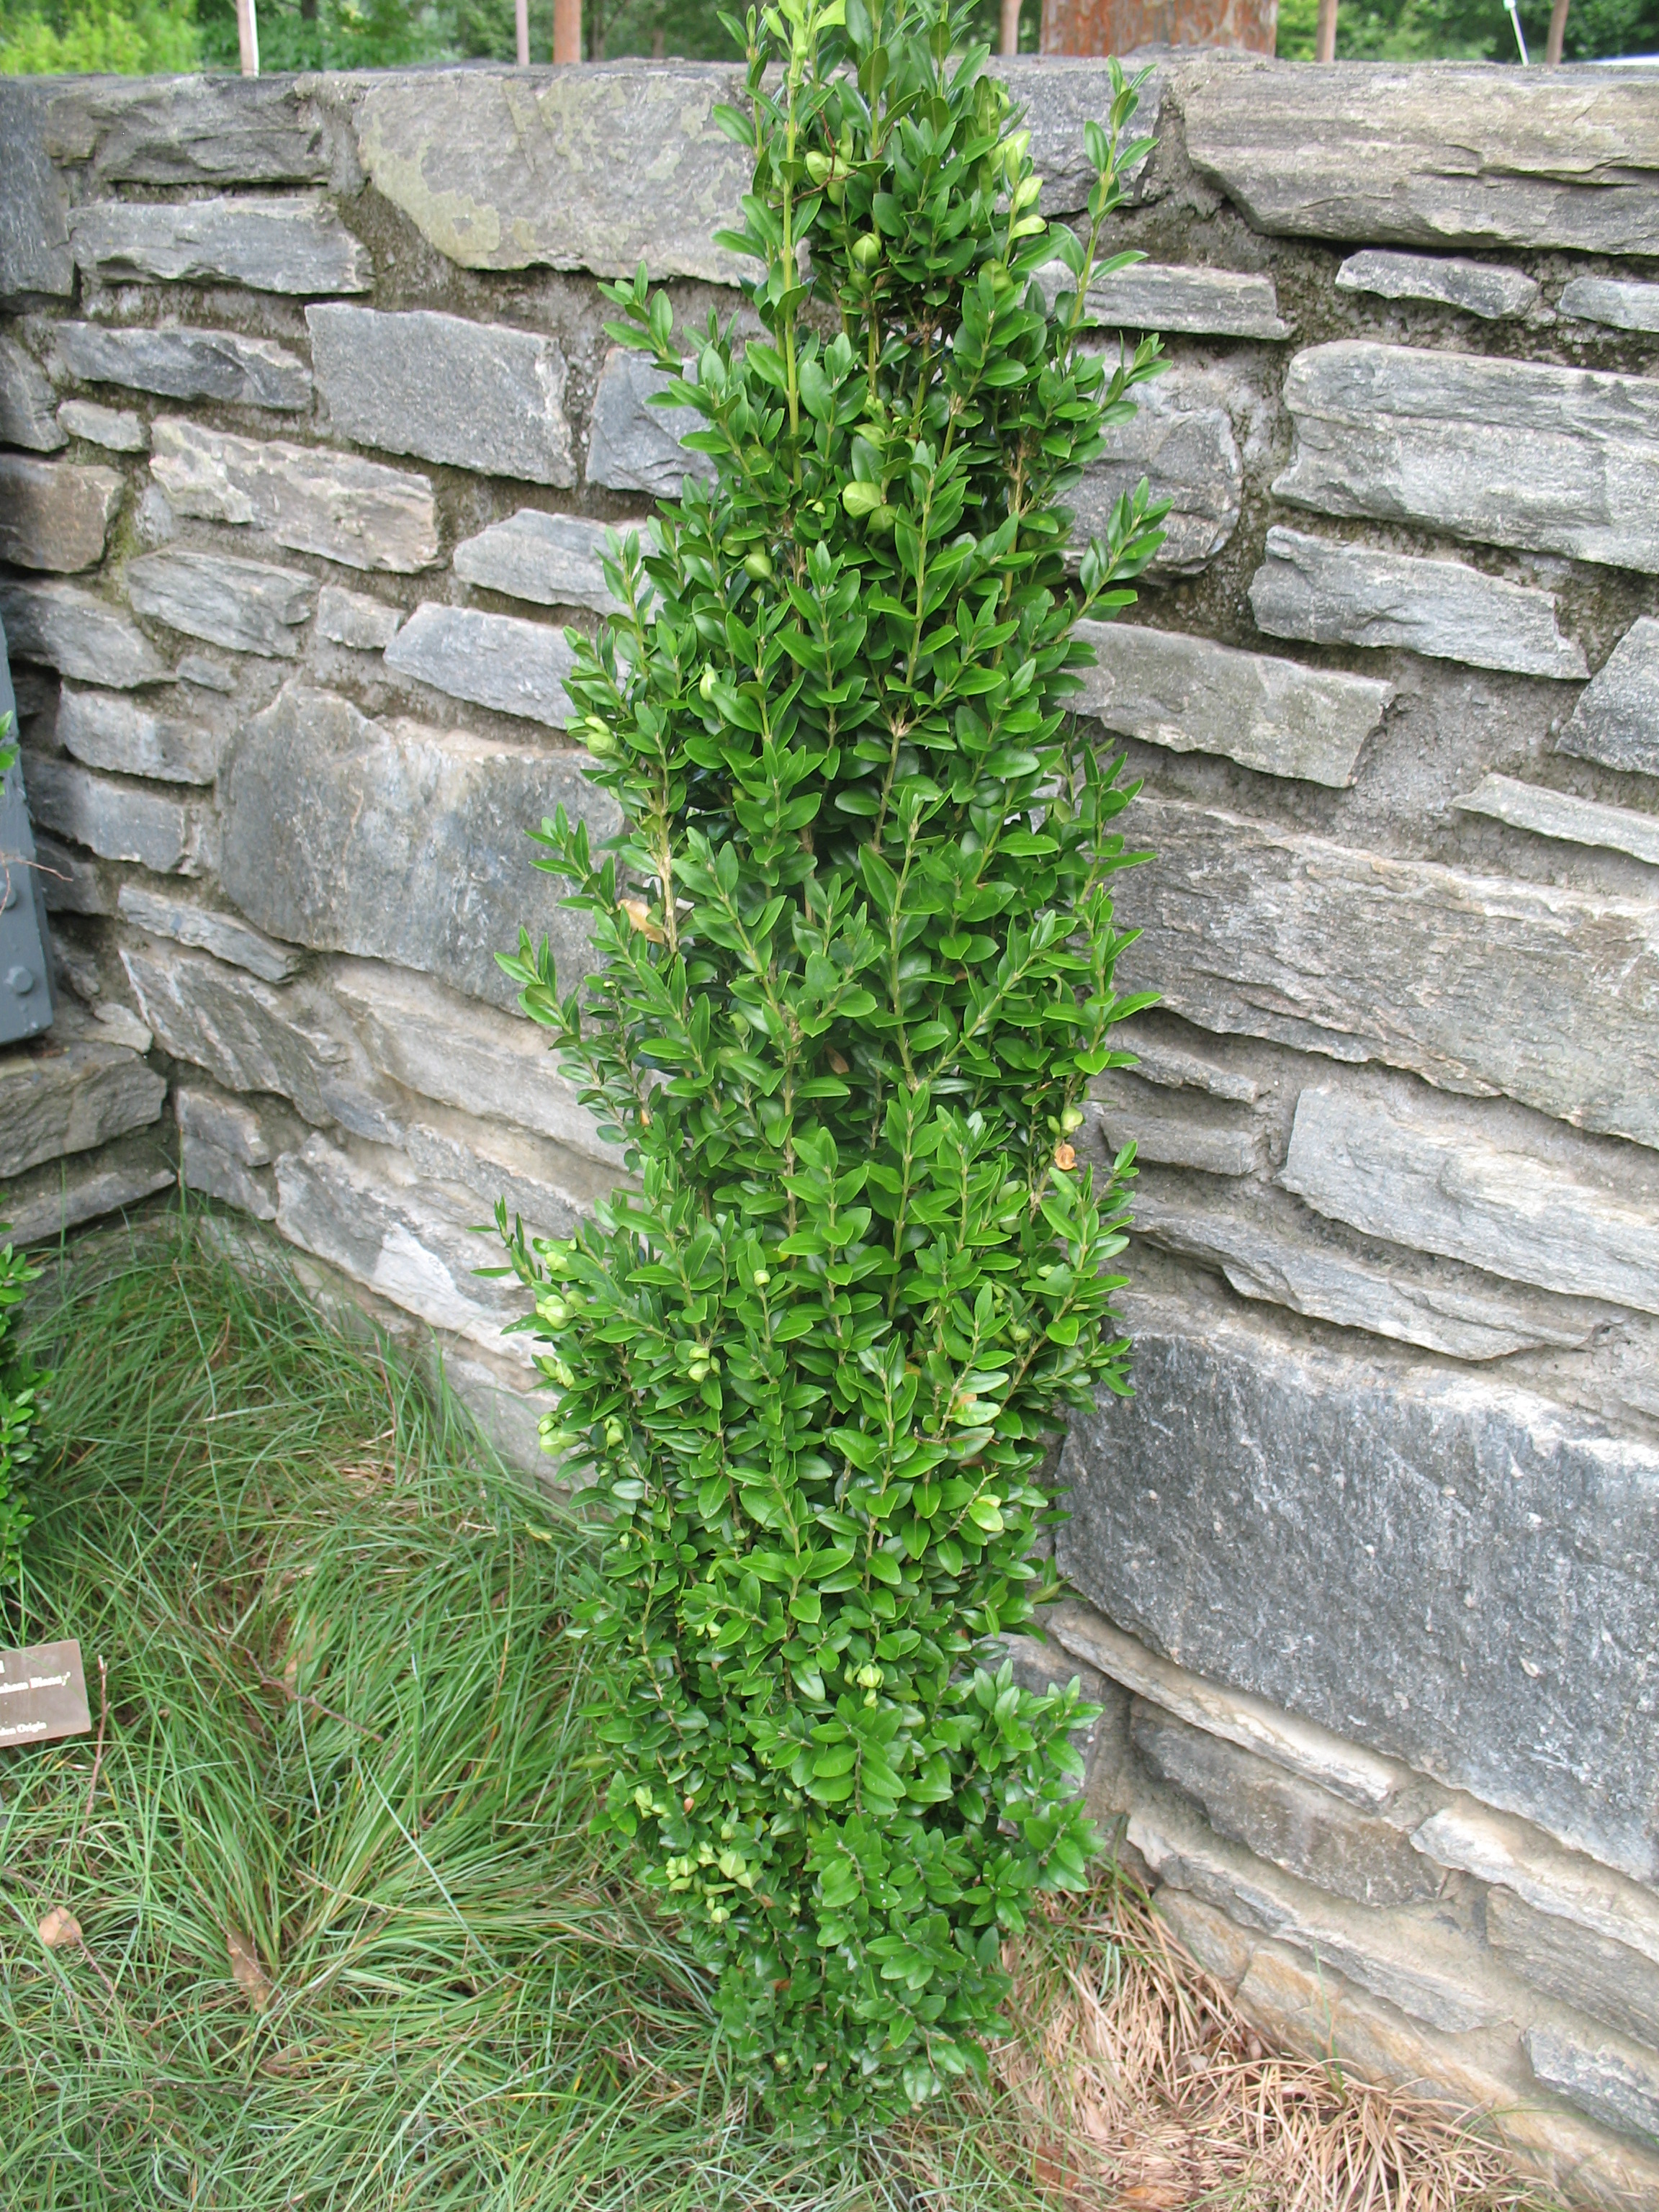 Buxus sempervirens 'Graham Blandy' / Buxus sempervirens 'Graham Blandy'